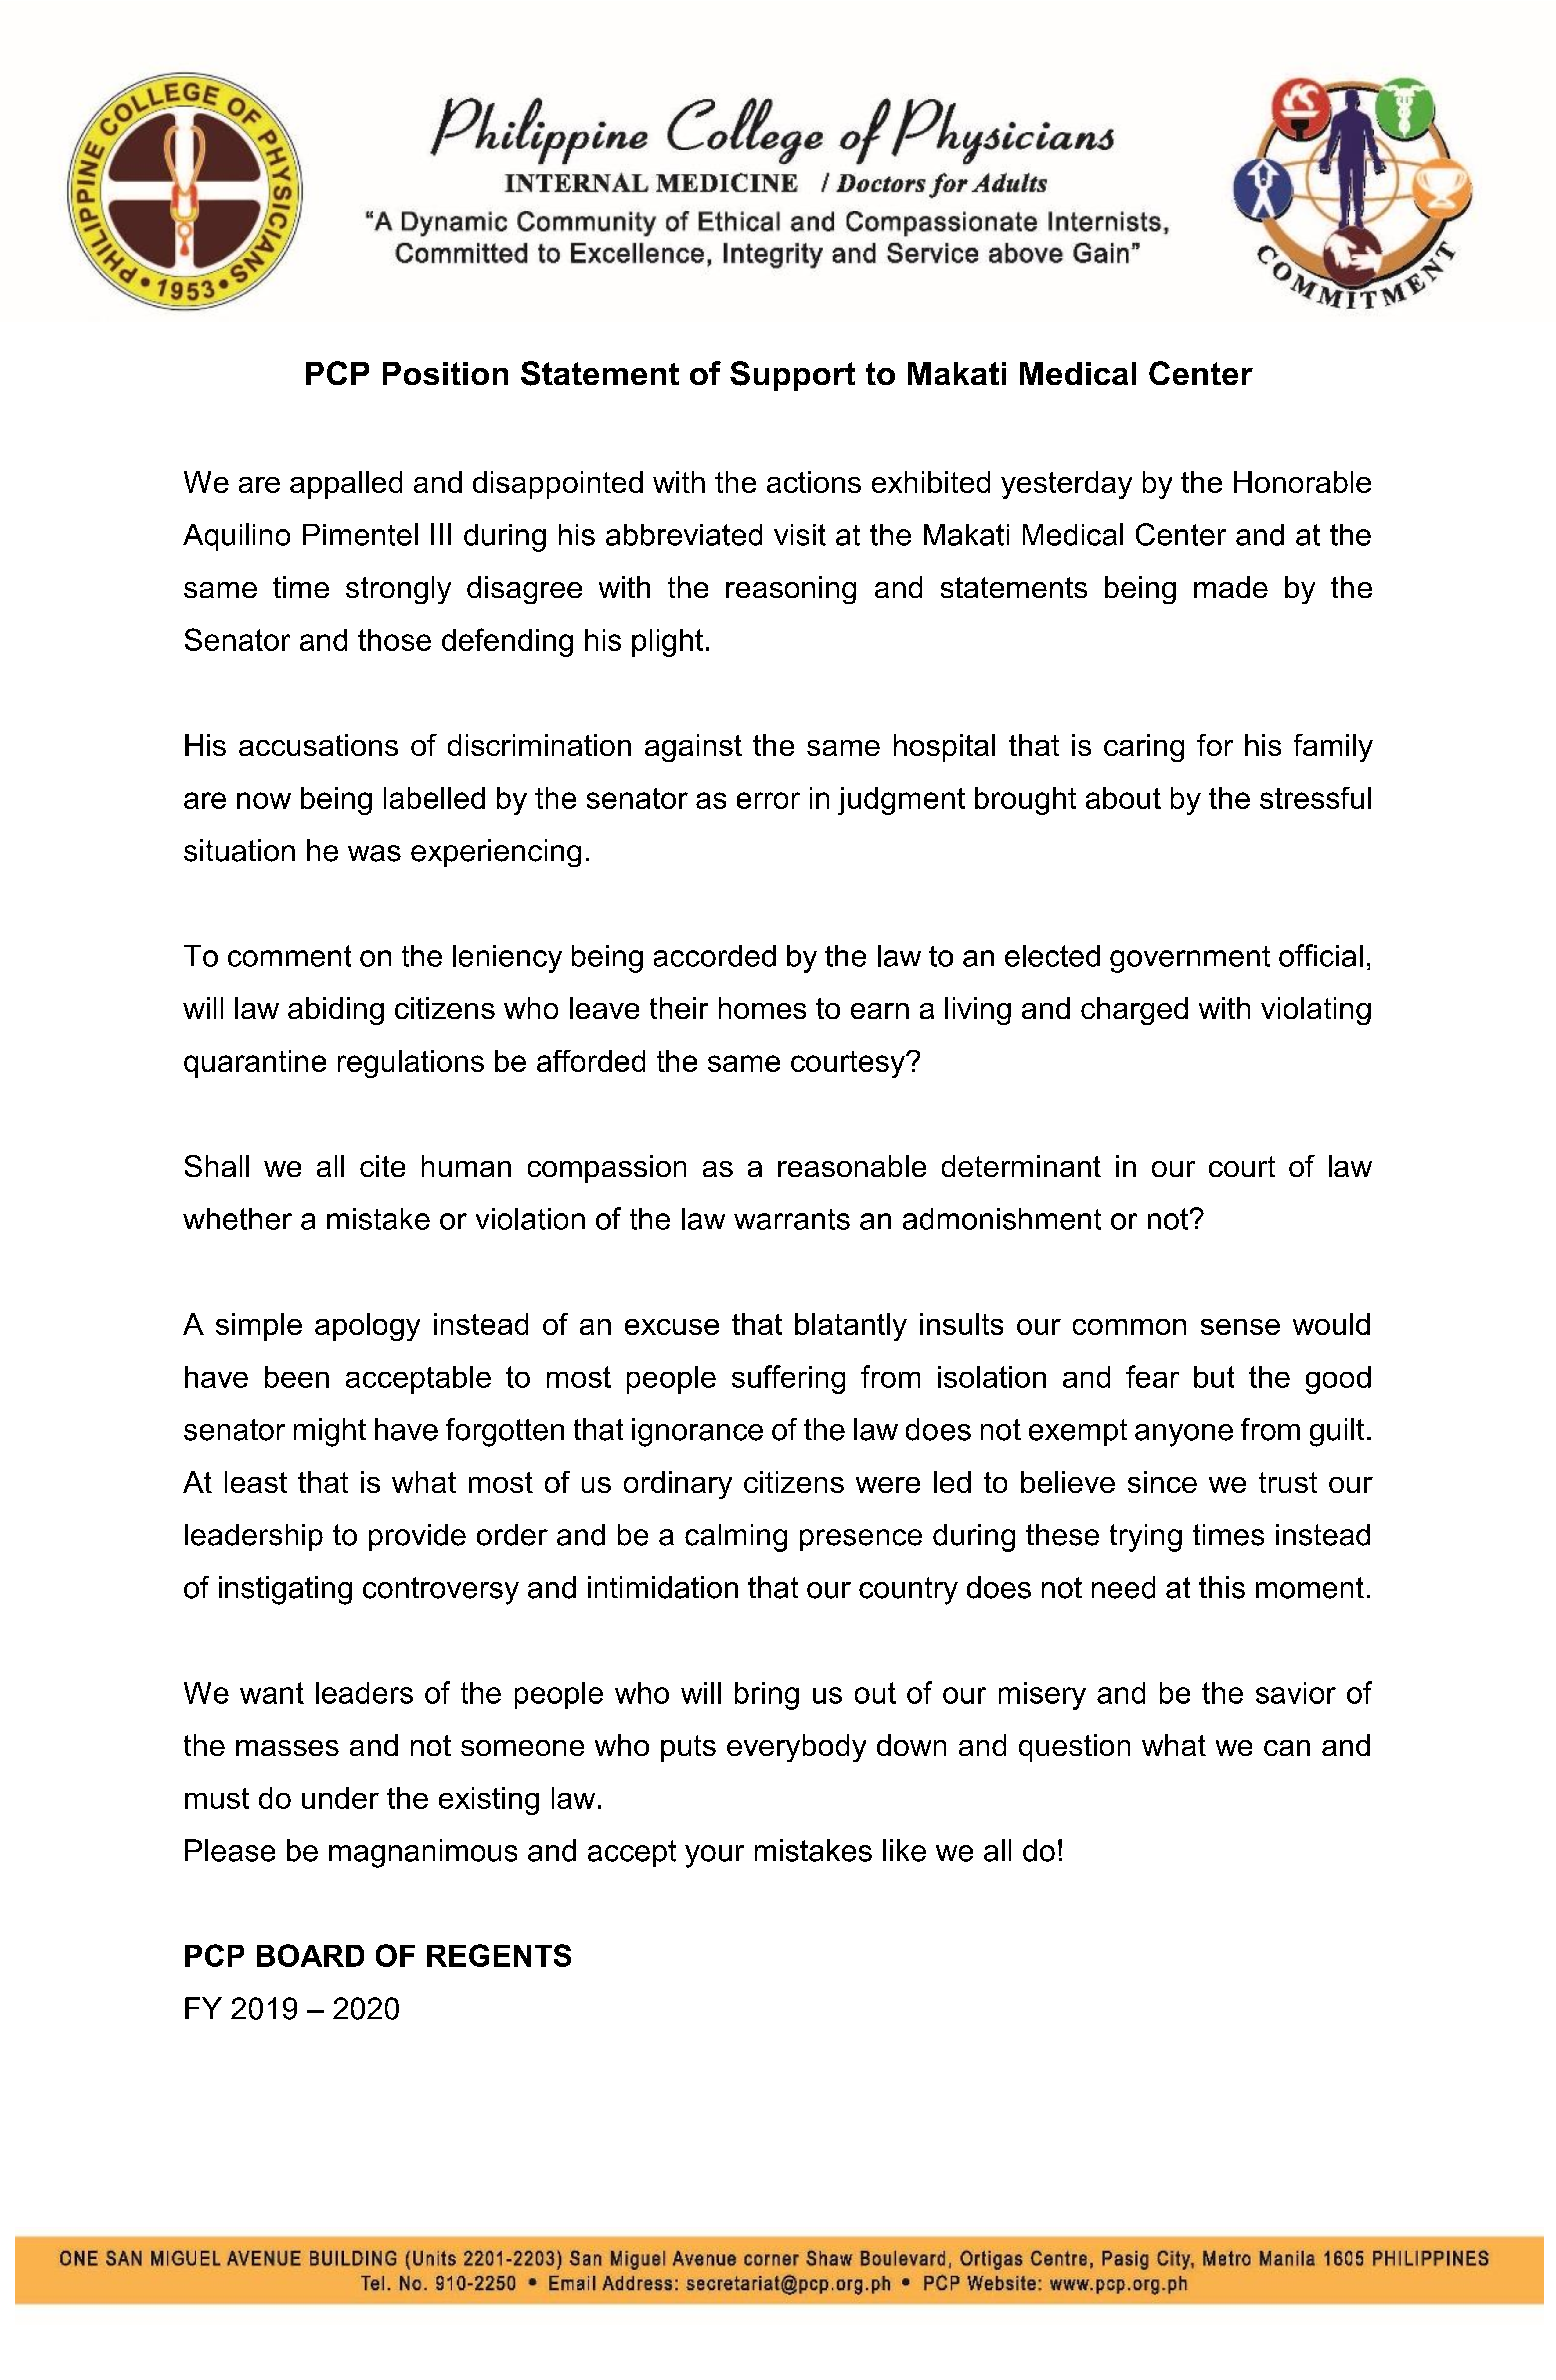 PCP position statement MMC 26 March 2020